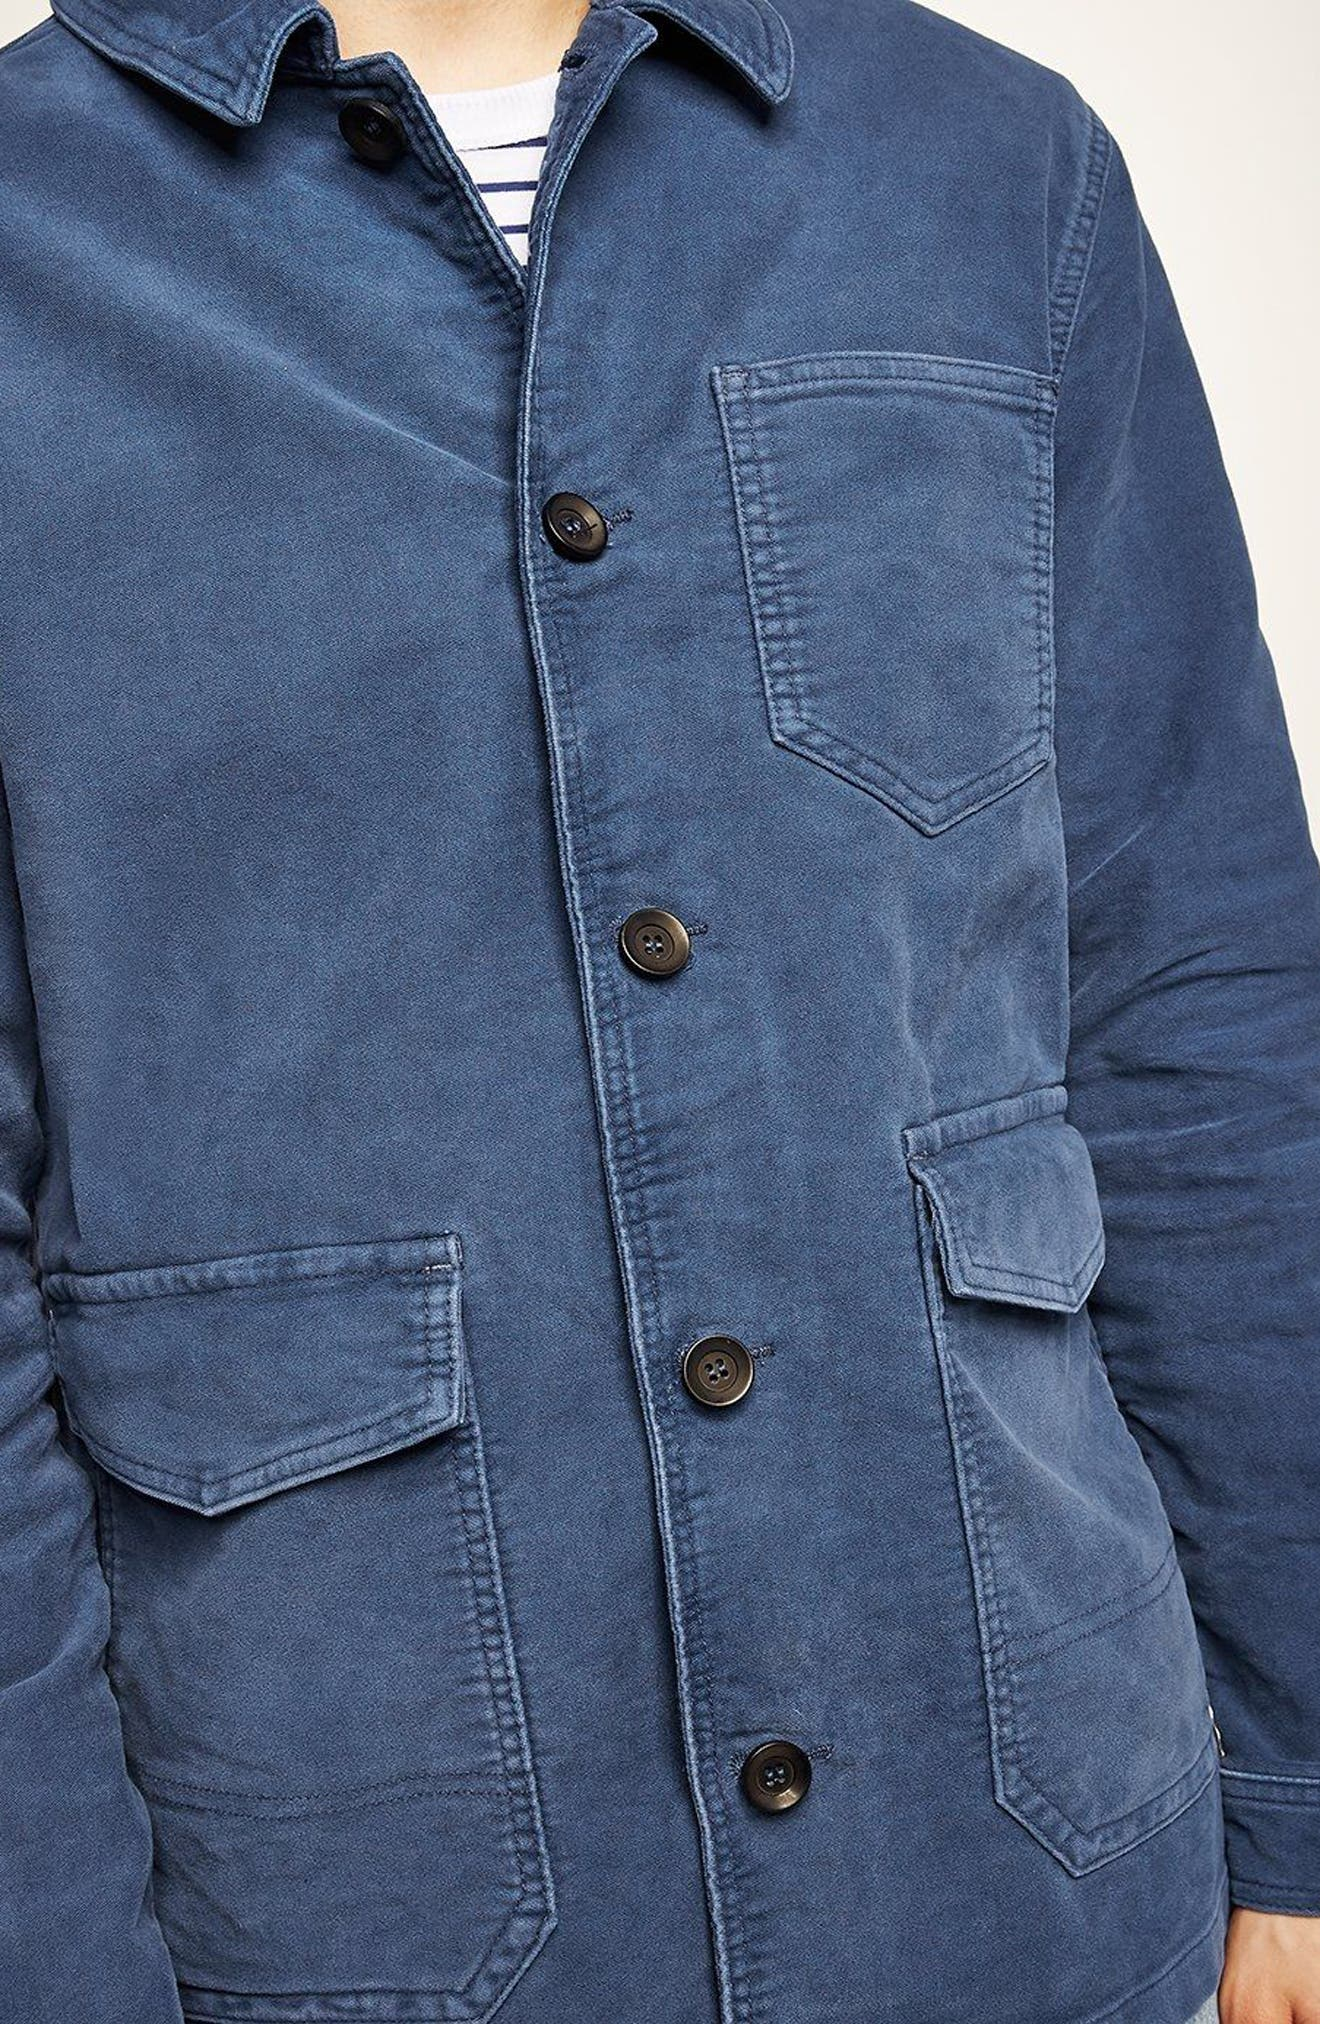 Classic Fit Work Jacket,                             Alternate thumbnail 4, color,                             400